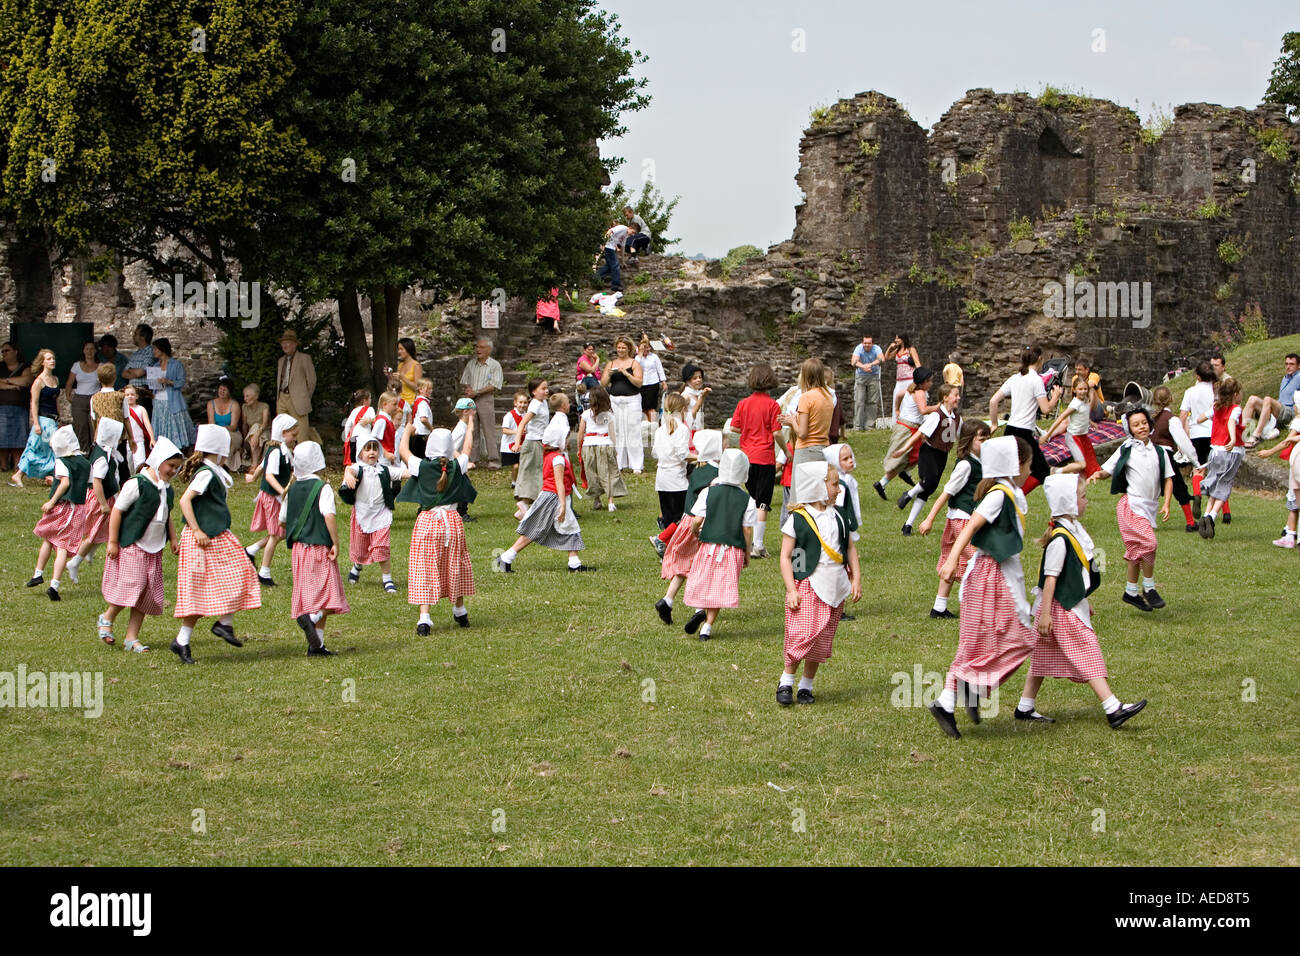 Children in traditional costume country dancing at a festival in a ruined castle grounds Abergavenny Wales UK - Stock Image